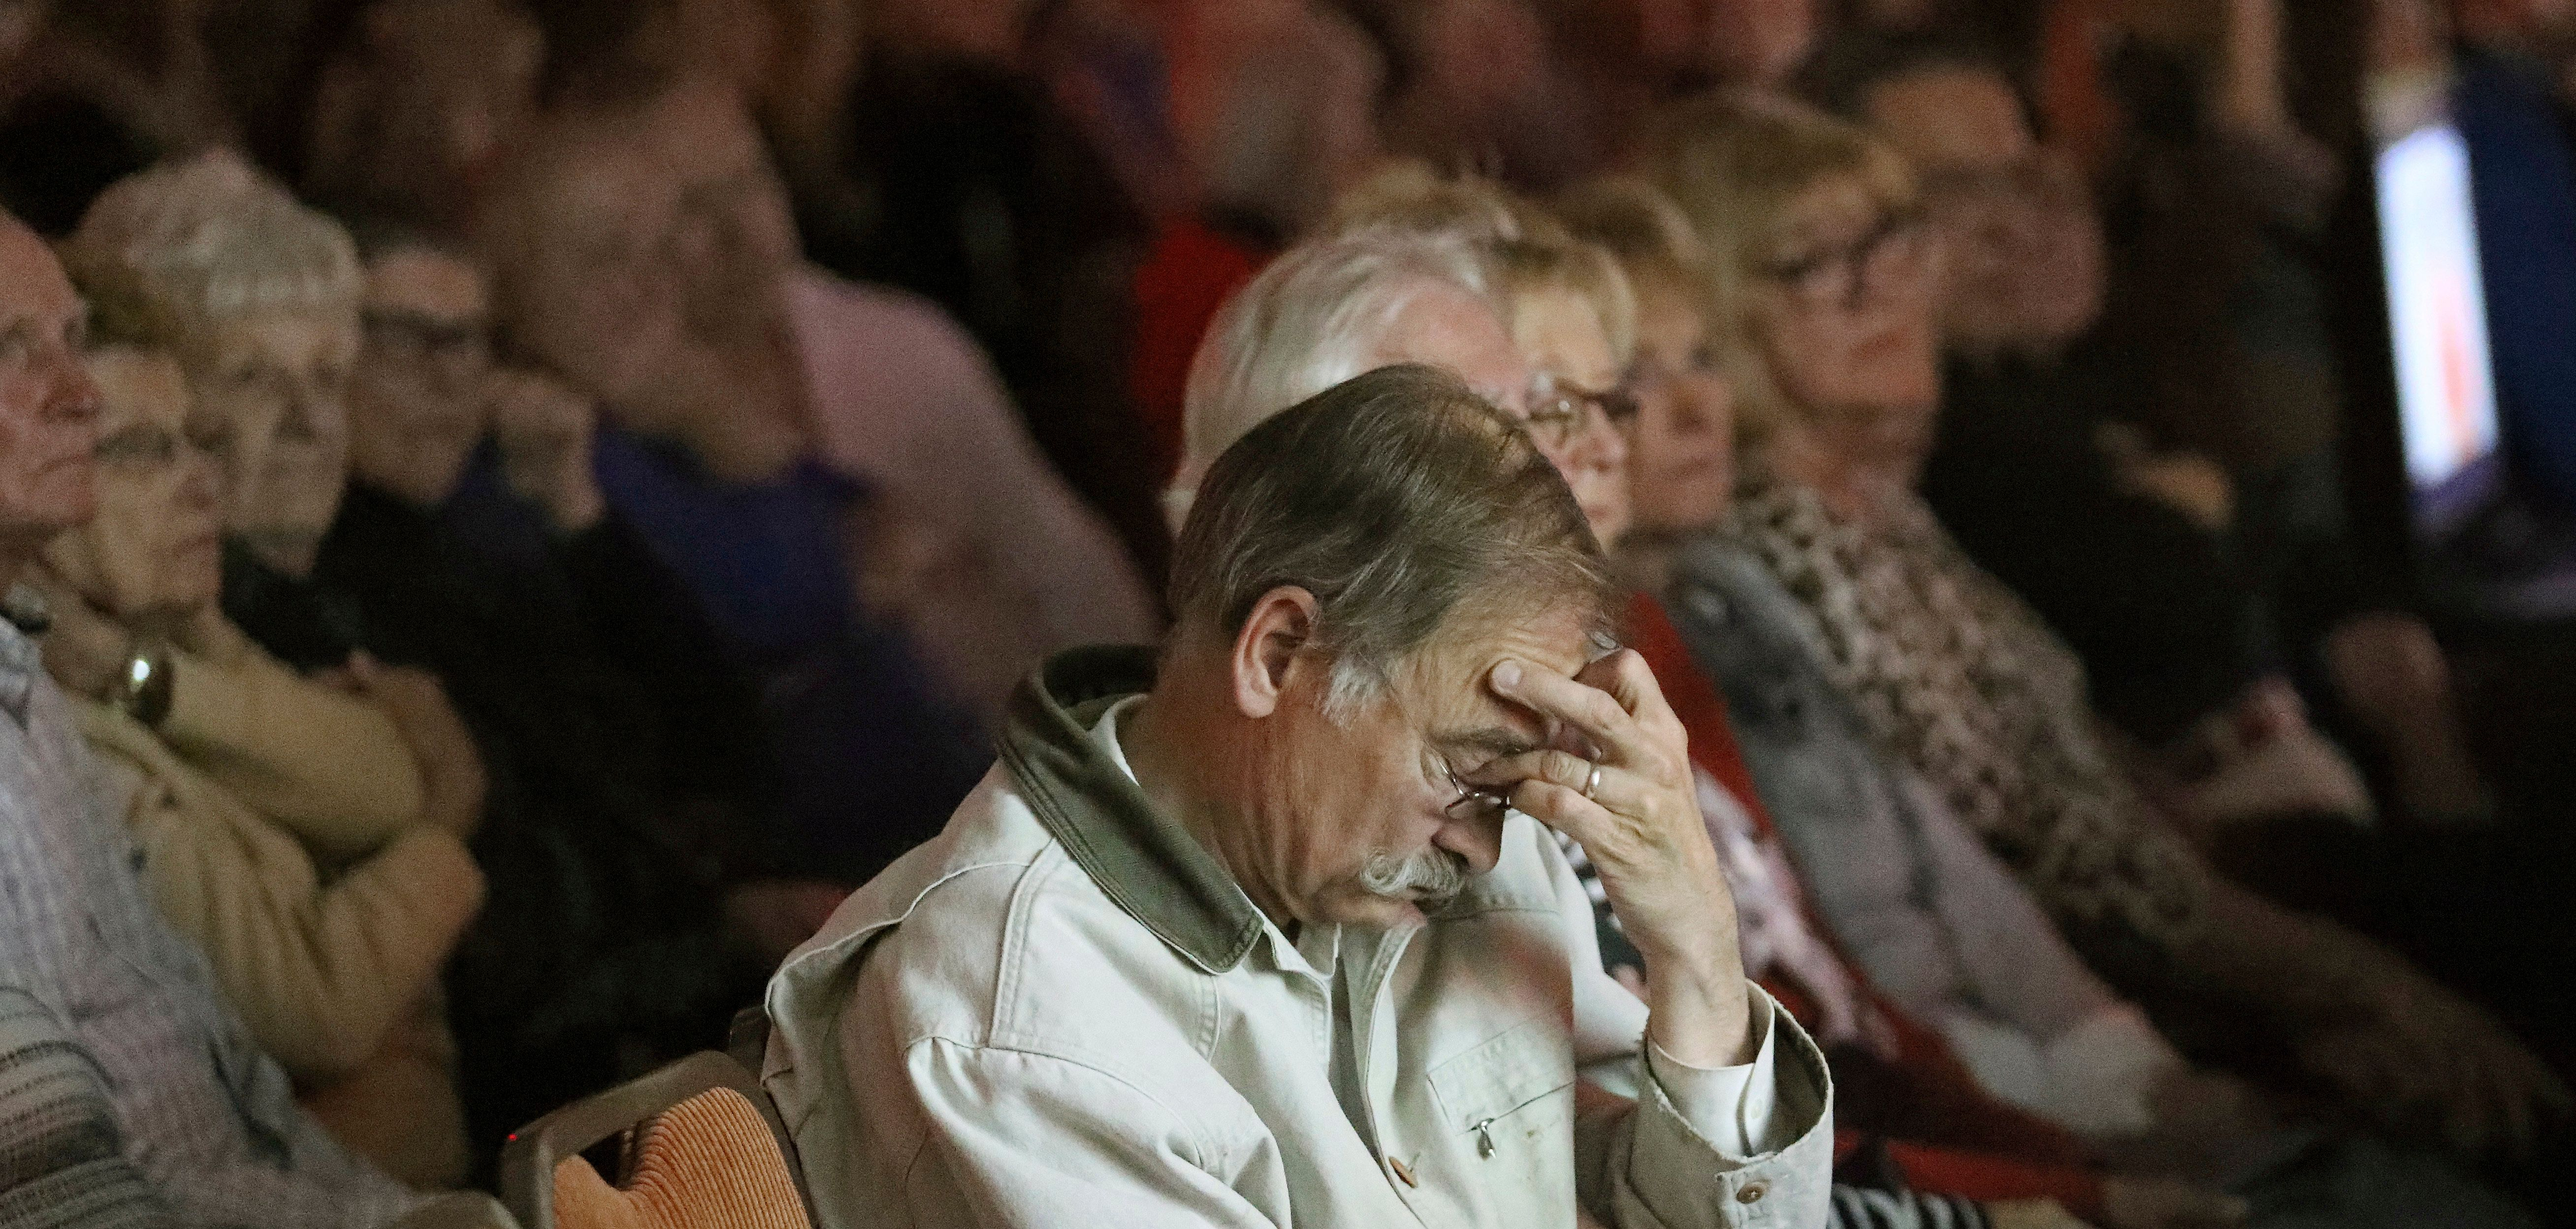 In this Tuesday, Oct. 9, 2018, photo, people watch a taped interview of Russell Henderson, who is currently serving two consecutive life sentences for the murder of Matthew Shepard, during a community forum in Laramie, Wyo. About 200 people attended the forum questioning the prevailing view Shepard was murdered because of his sexual orientation. (AP Photo/Rick Bowmer)